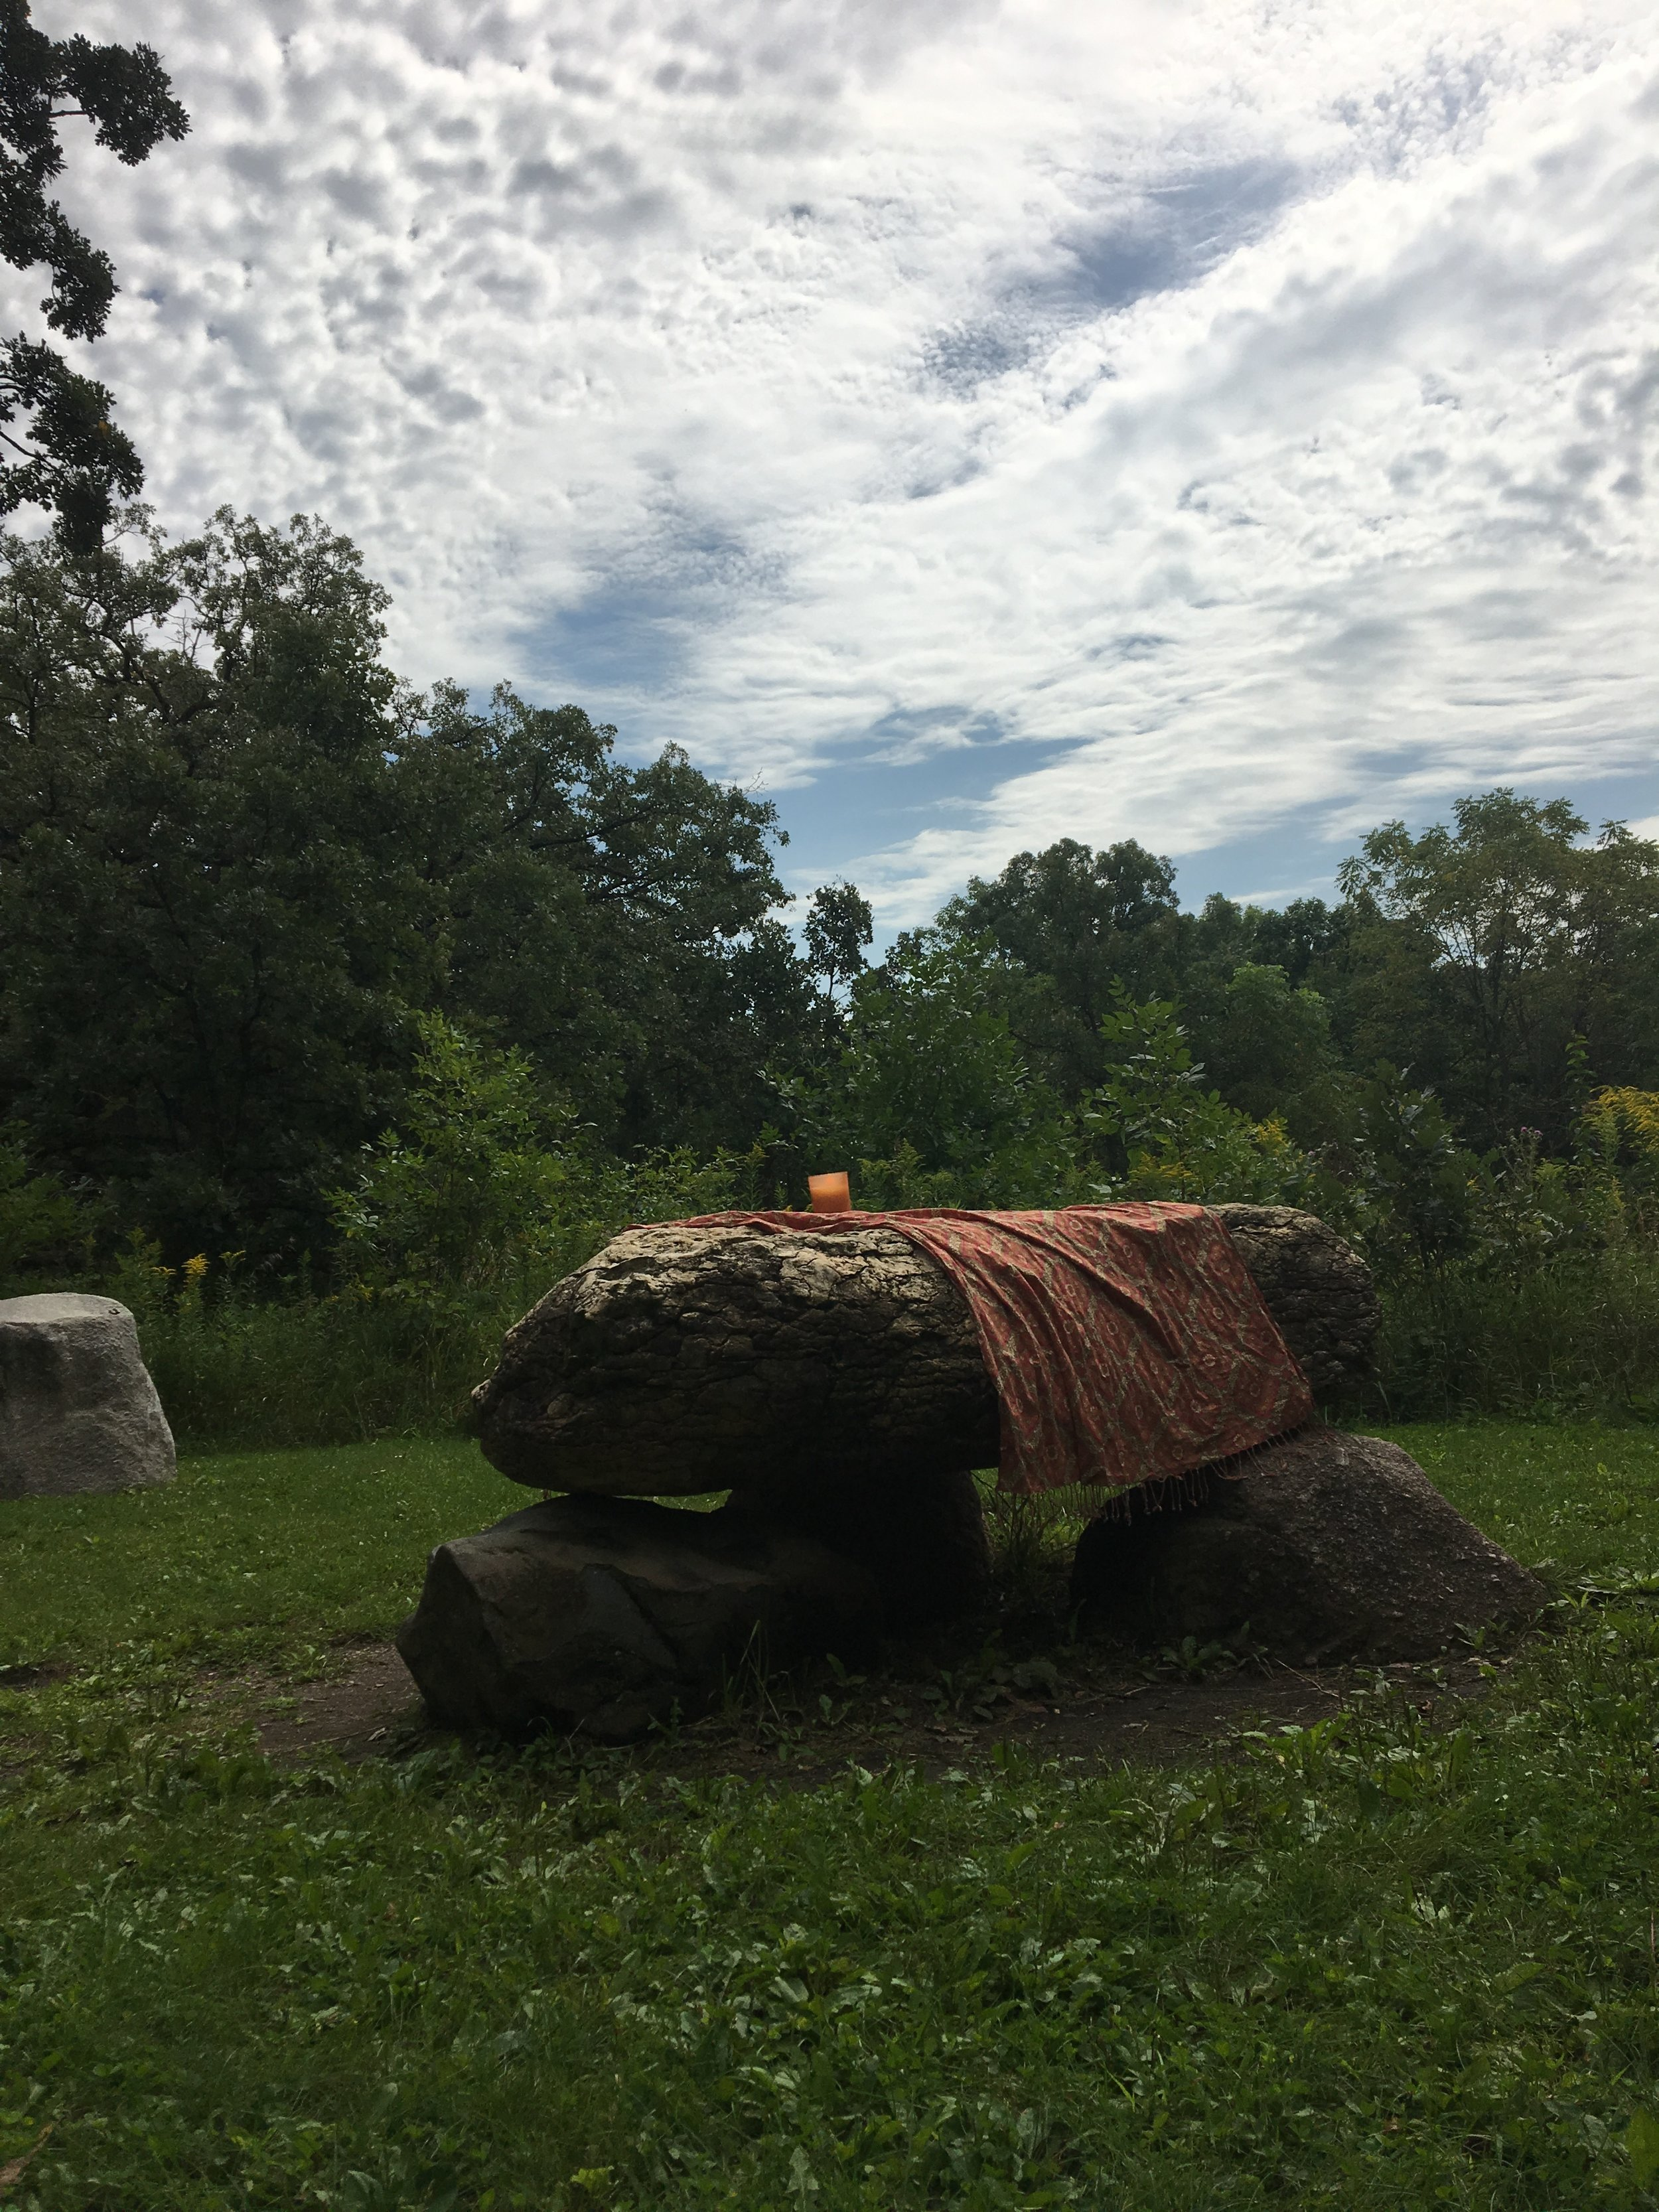 Viewing the eclipse from the Circle of Stones at Carleton College in Northfield, MN earlier today.